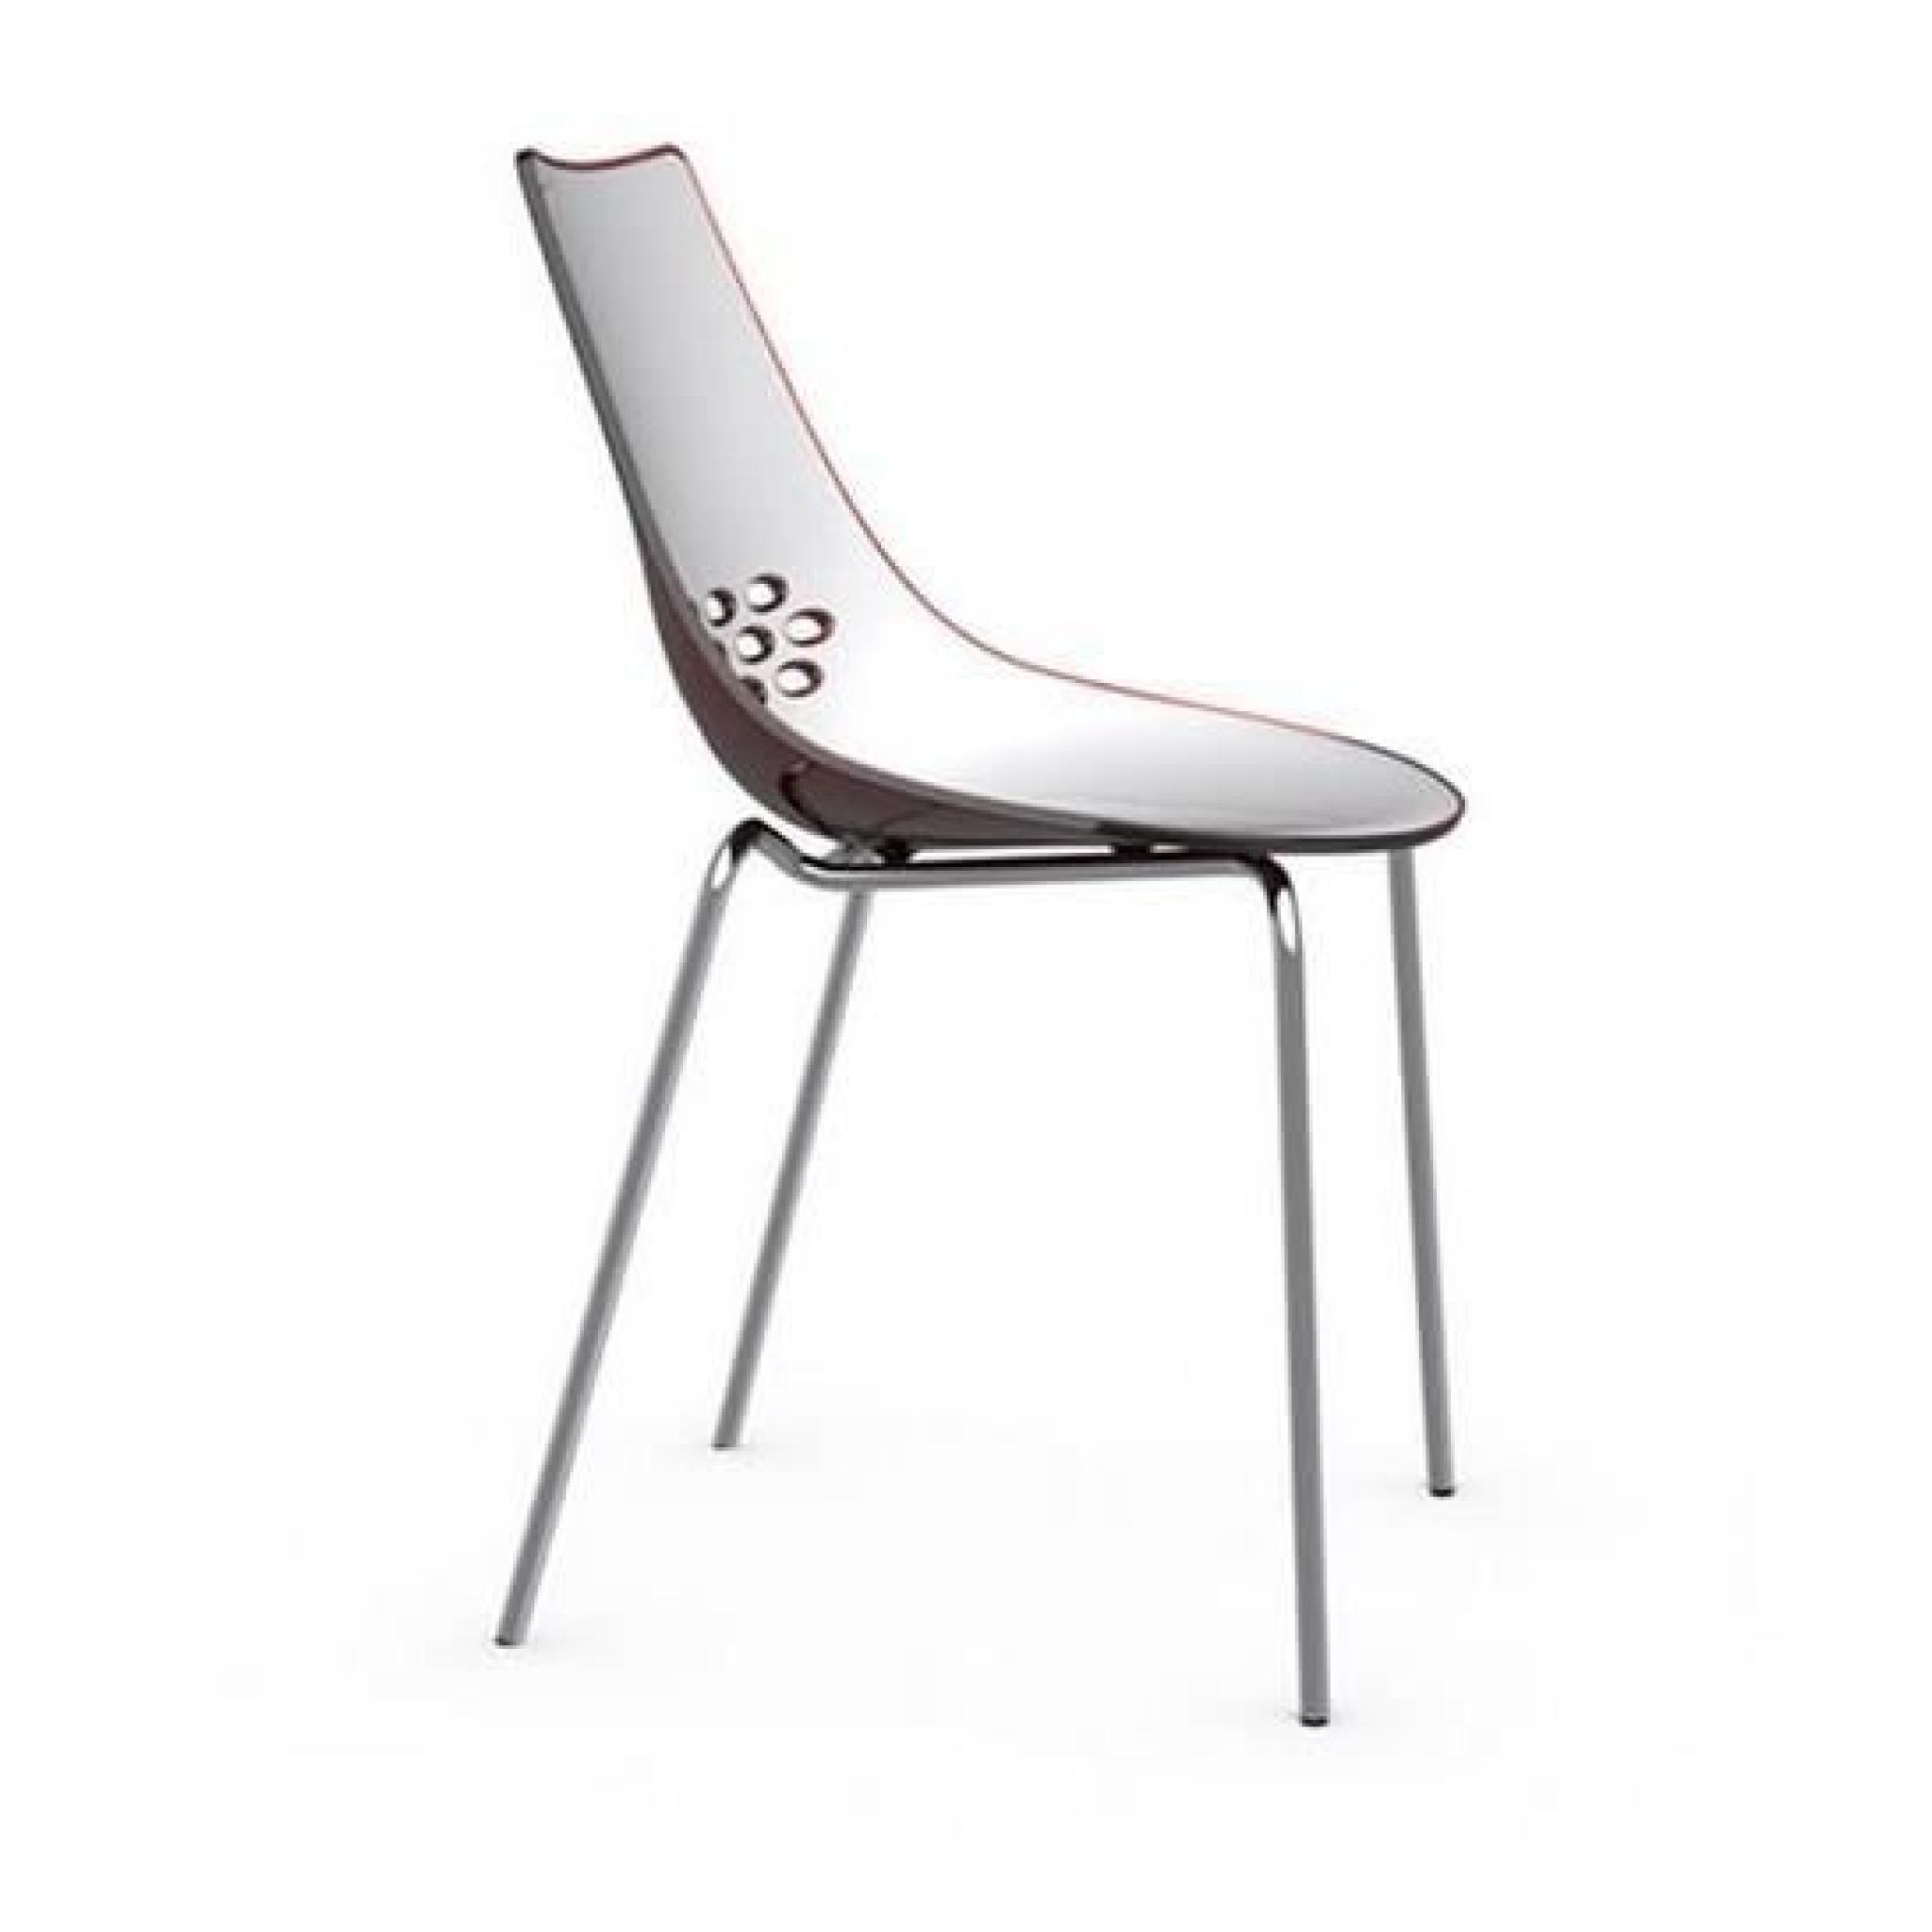 chaise design jam blanche brillante et rouge transparent de calligaris achat vente chaise. Black Bedroom Furniture Sets. Home Design Ideas